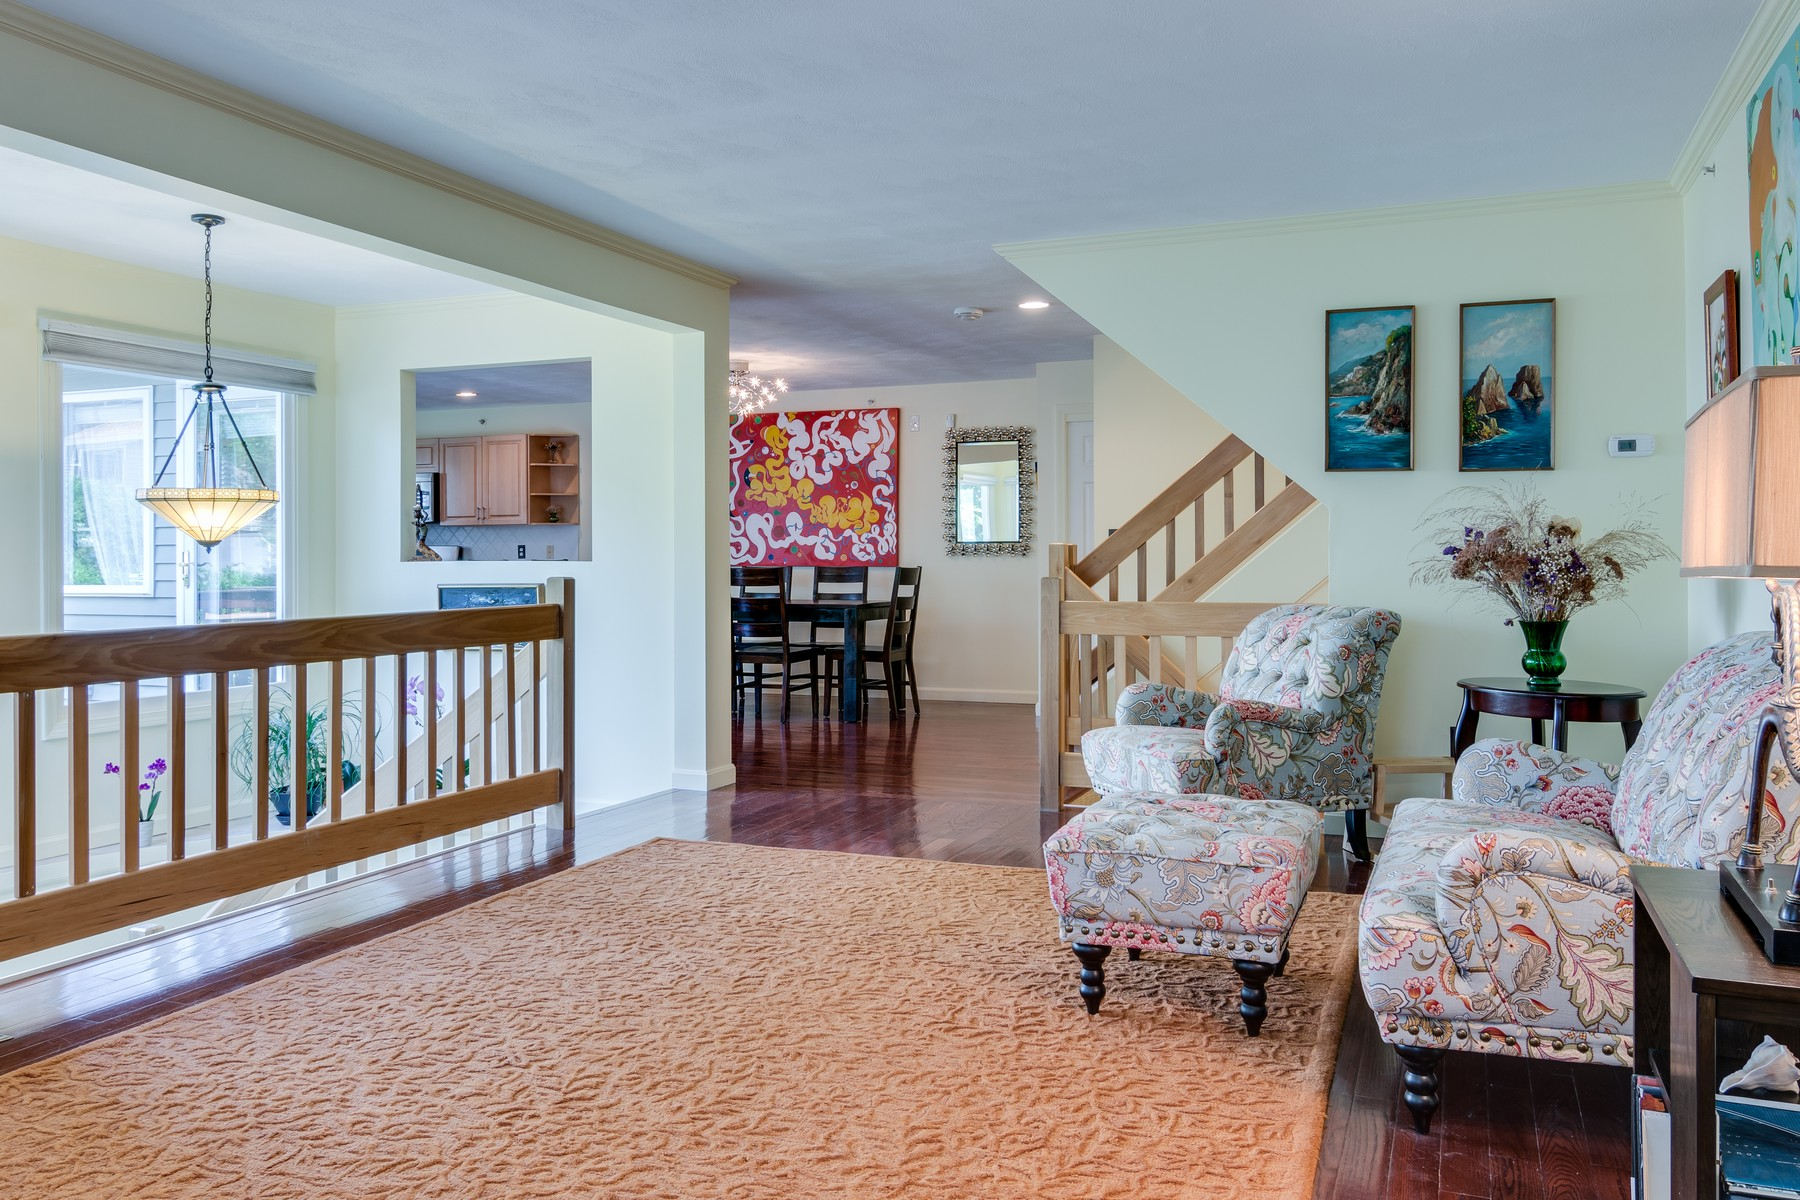 Condominium for Sale at Charming Condominium 33 Brittania Circle Unit 33 Salem, Massachusetts, 01970 United States